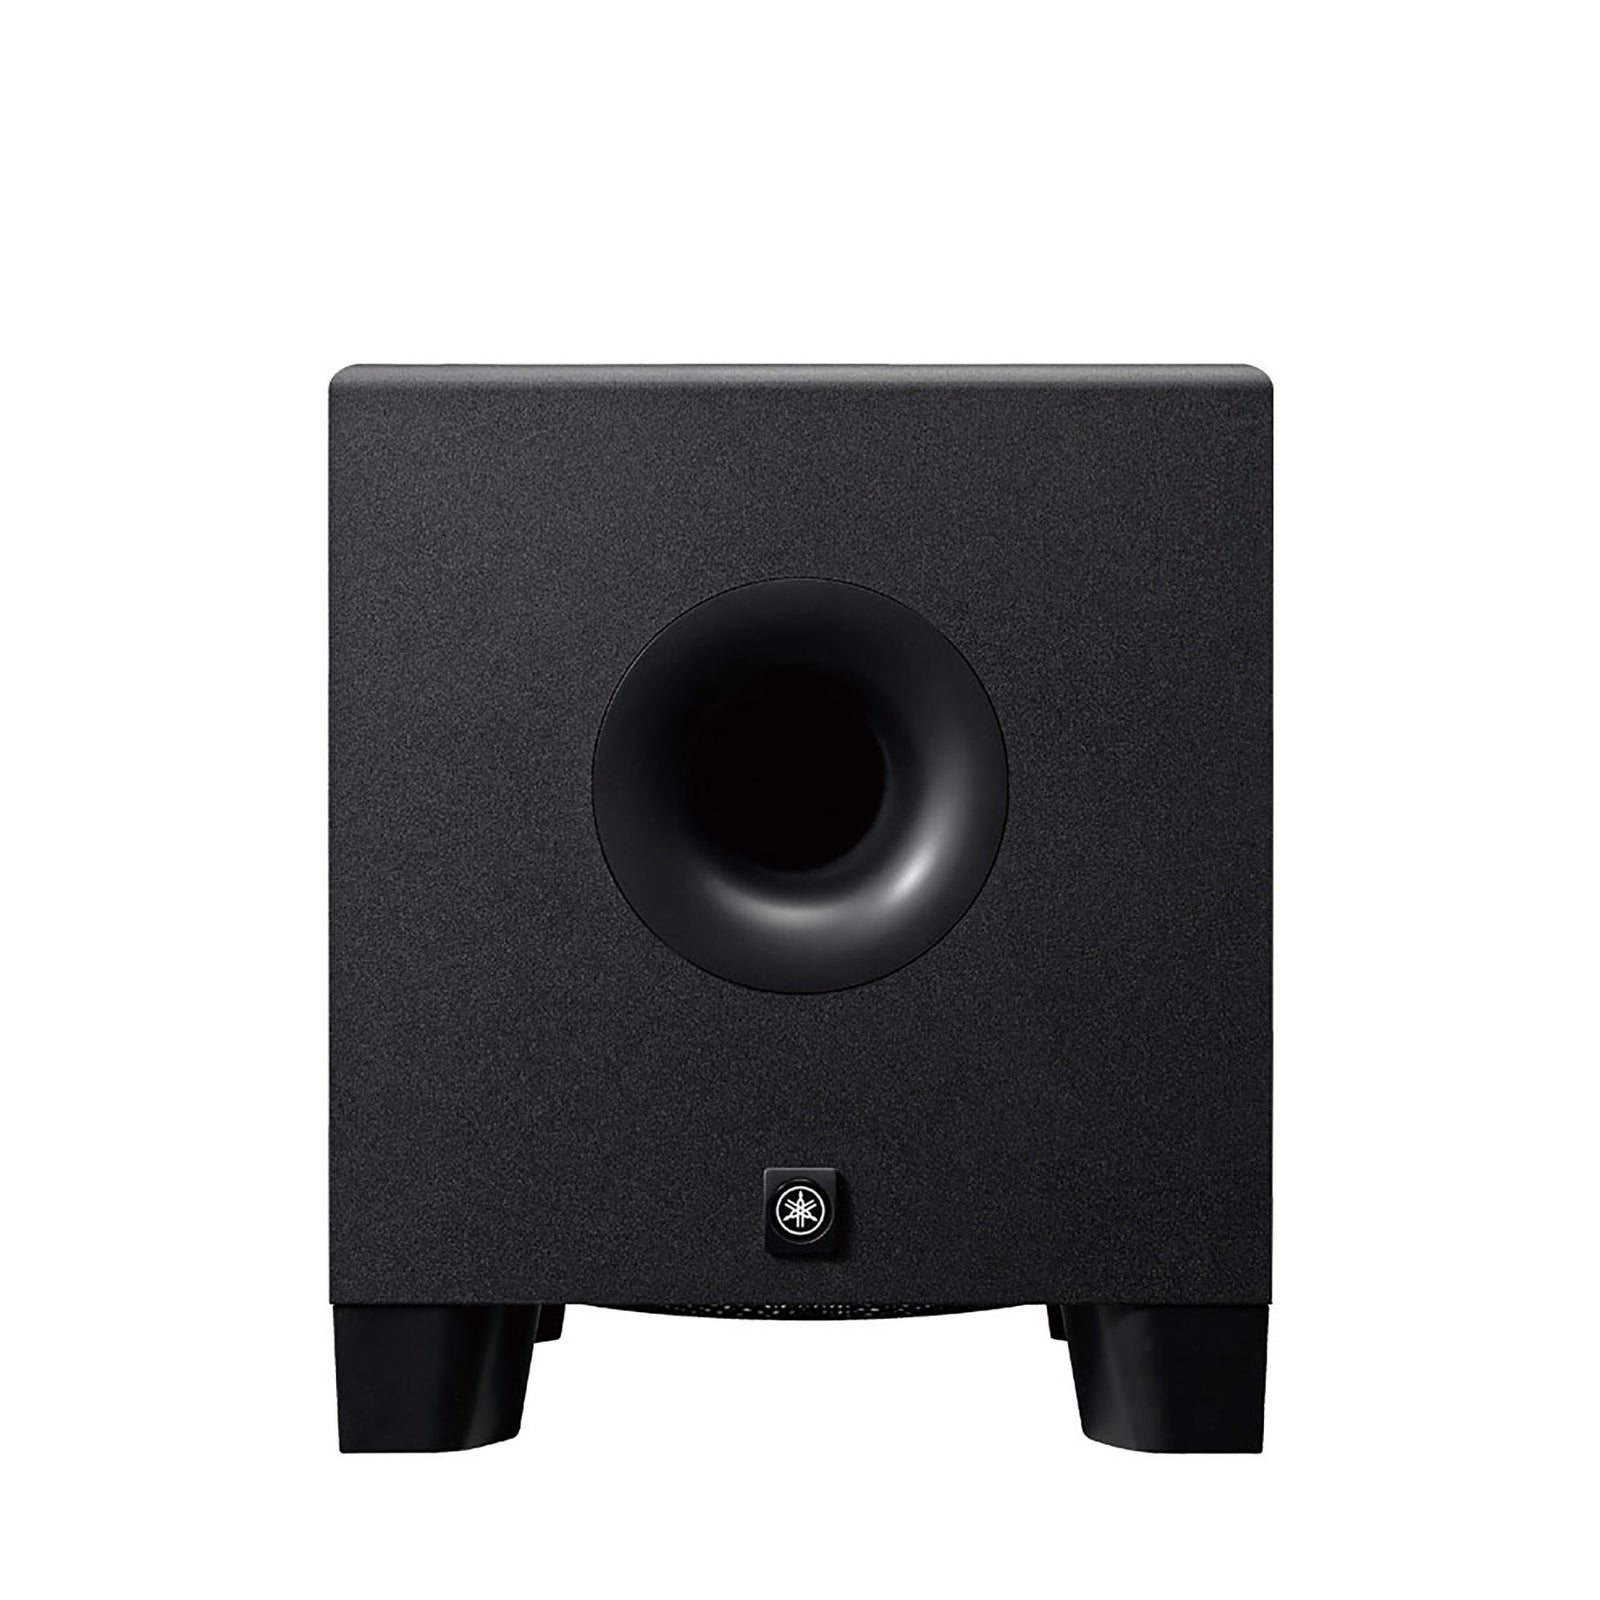 "Yamaha HS Series 8"" Powered Subwoofer - Black"